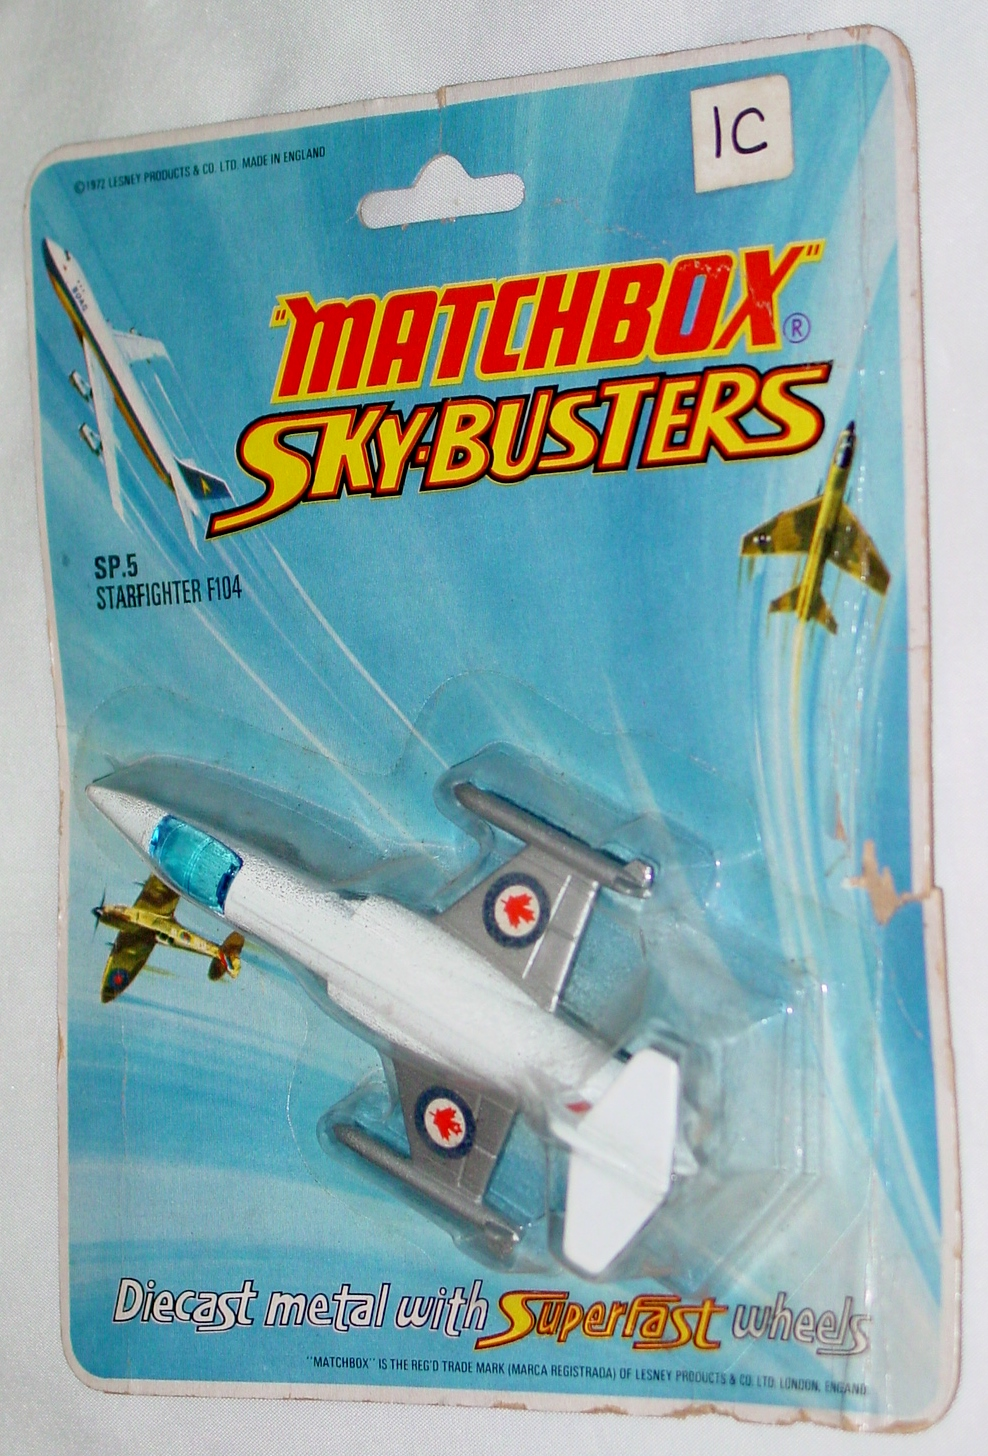 Sky Buster 05 A 1 - Starfighter F104 thin axles leaf to rear ENG C9 BP